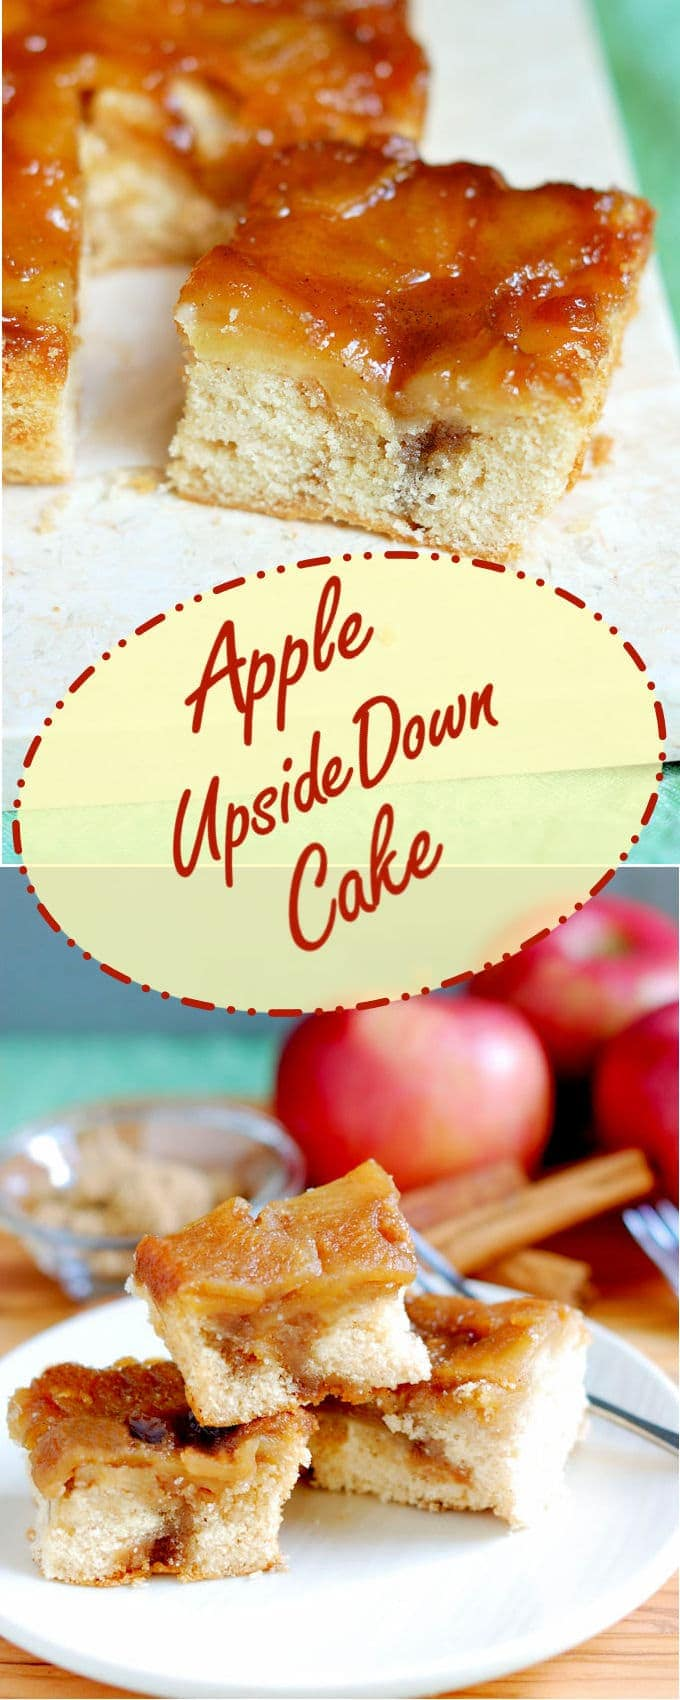 Fresh apples baked in caramel on a cinnamon buttermilk cake